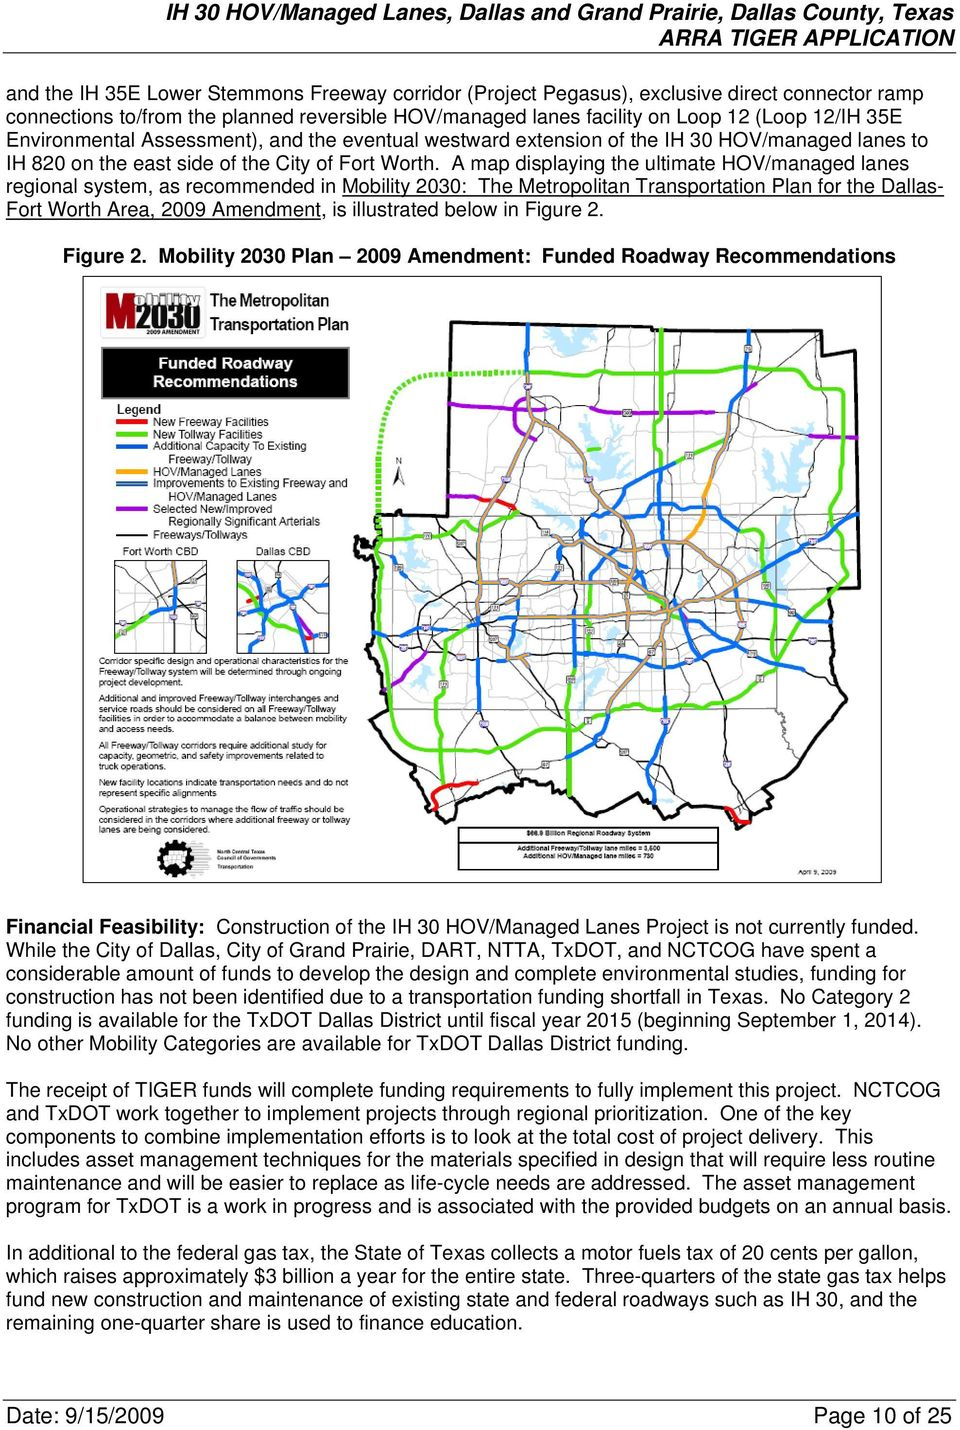 A map displaying the ultimate HOV/managed lanes regional system, as recommended in Mobility 2030: The Metropolitan Transportation Plan for the Dallas- Fort Worth Area, 2009 Amendment, is illustrated